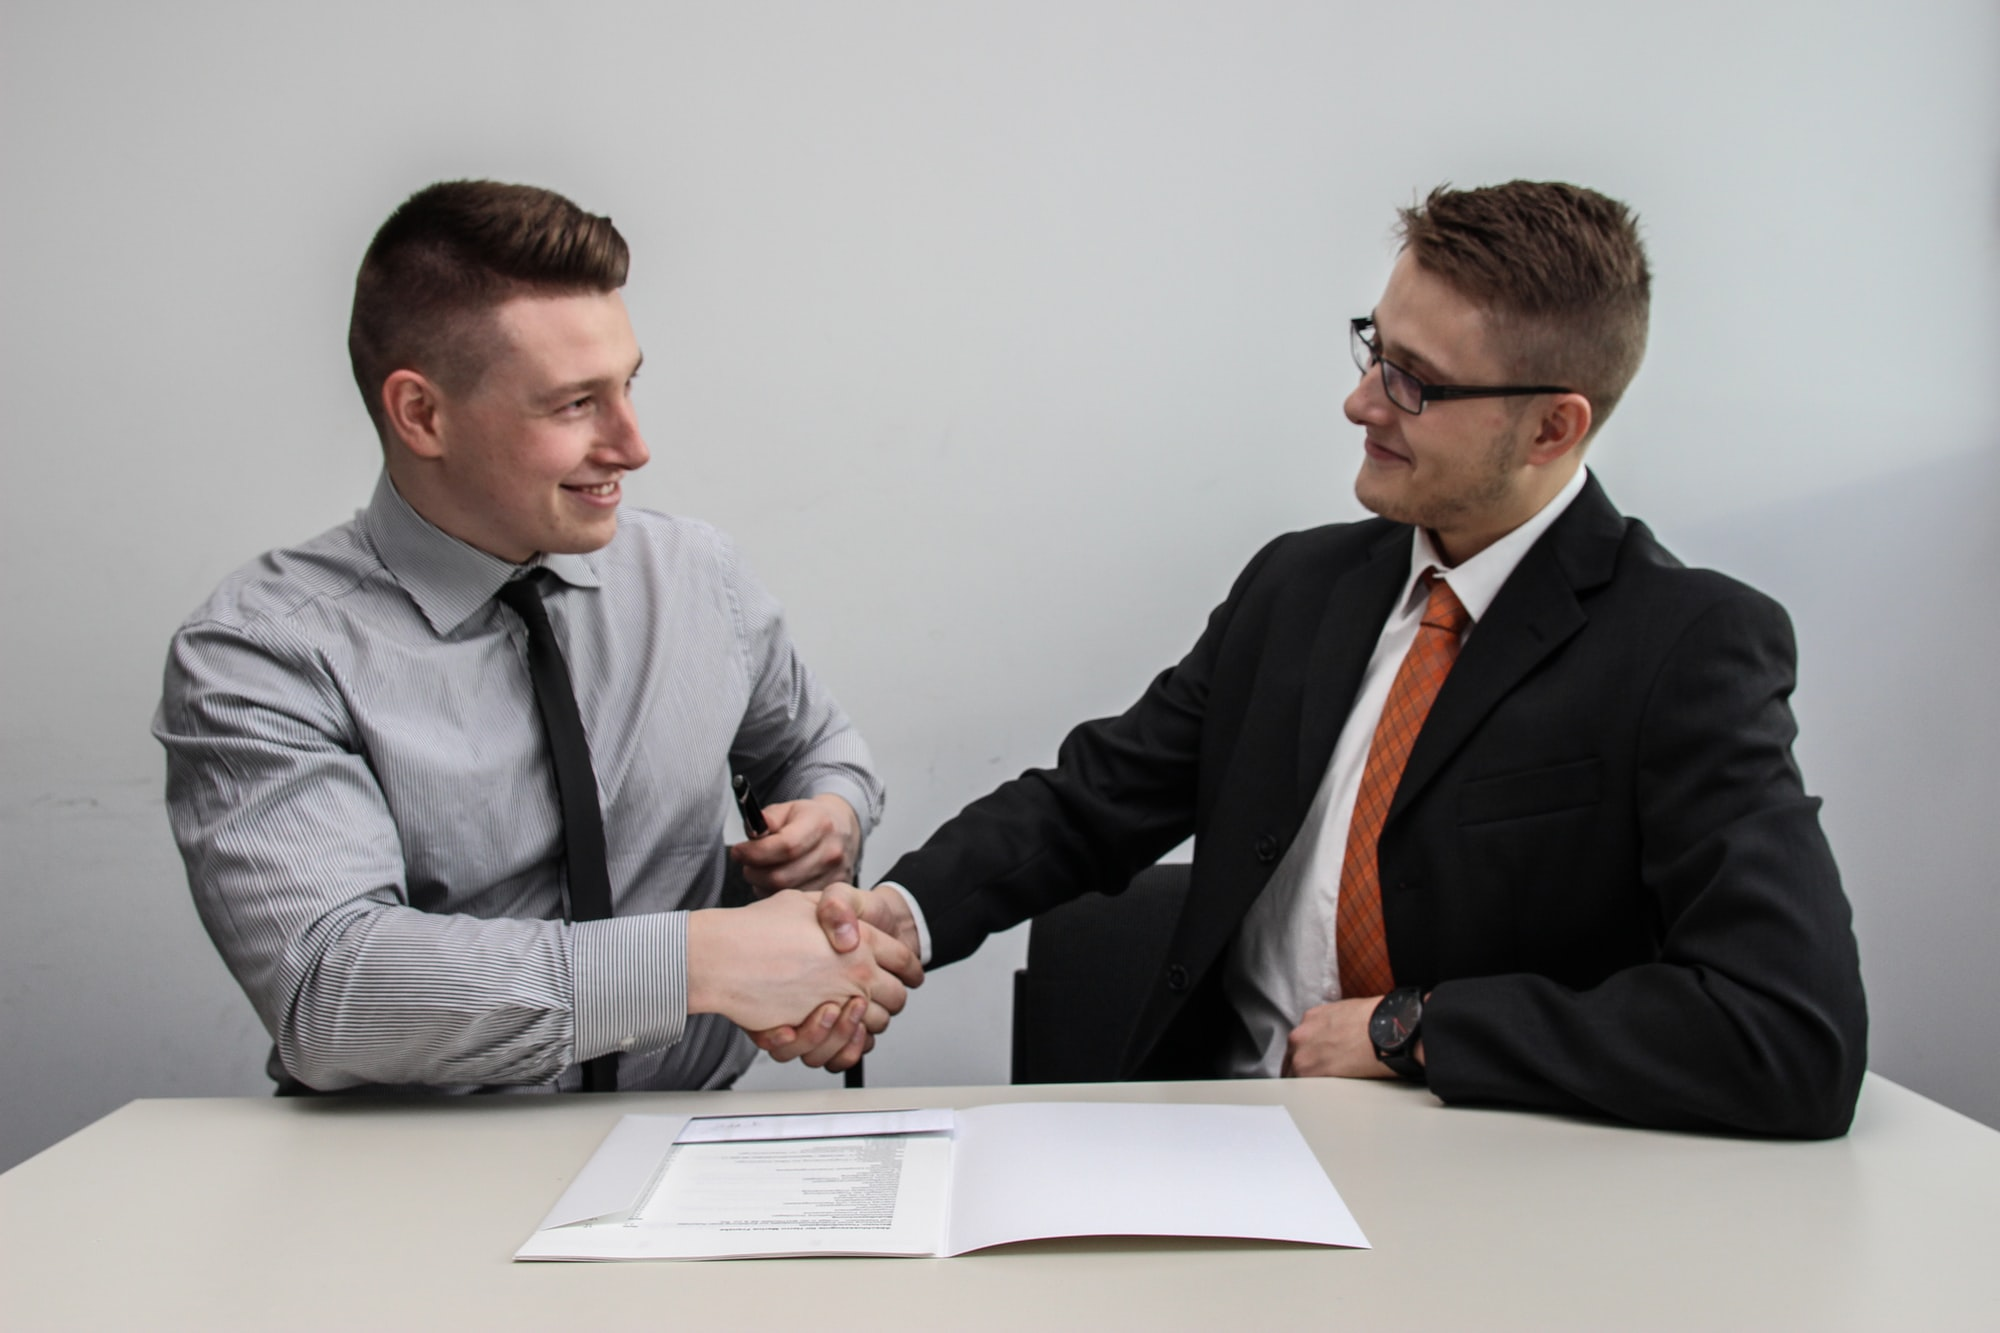 How to Hire Your First Employee for Your Startup